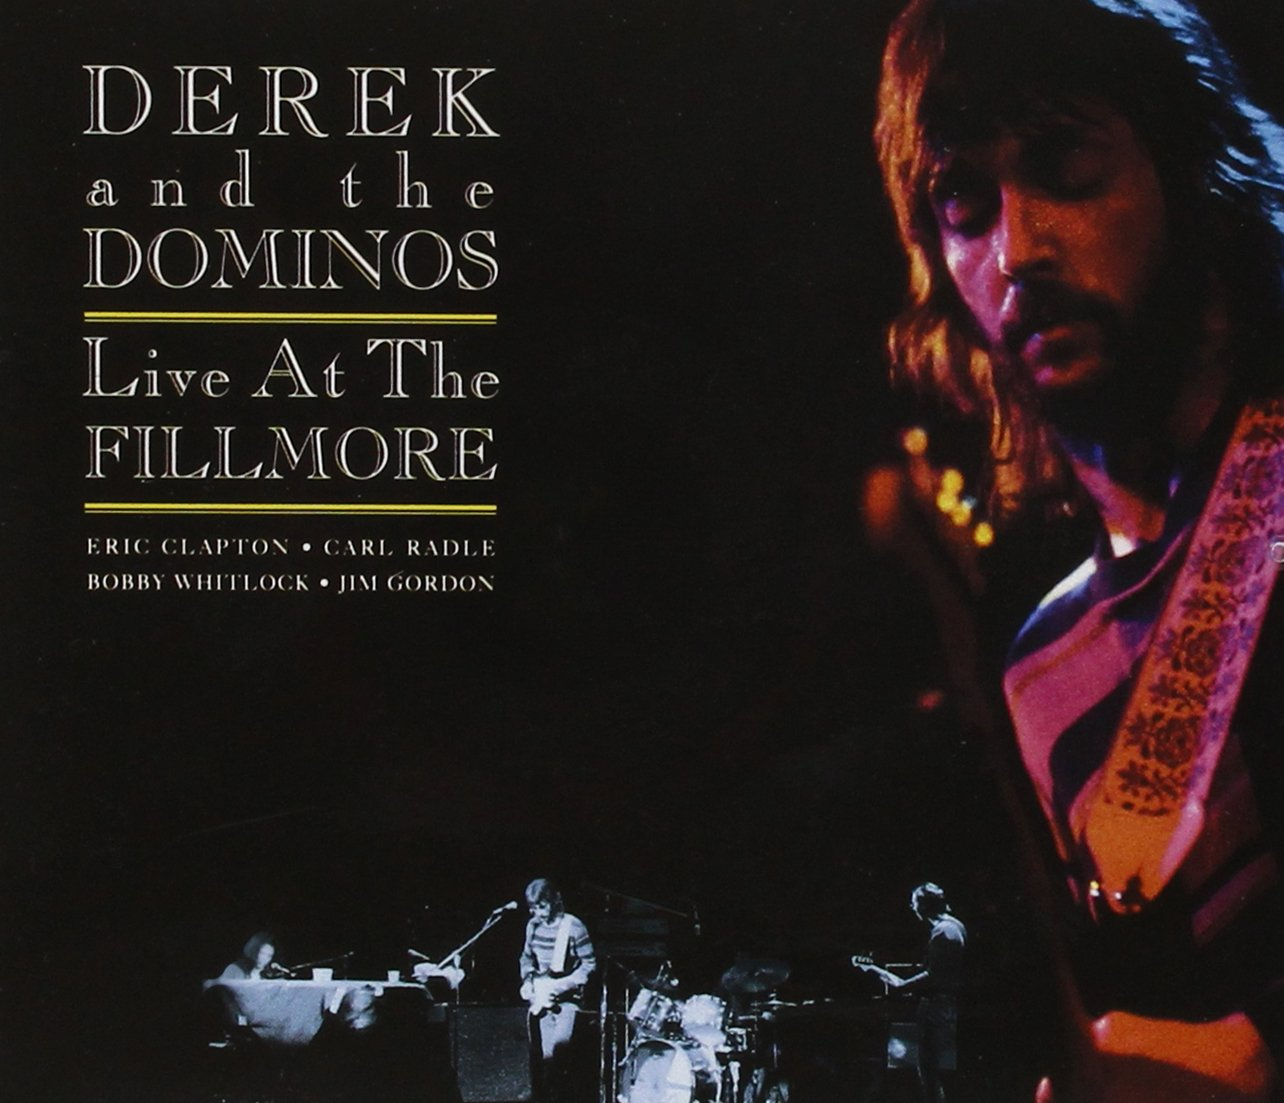 Live At The Fillmore [2 CD Expanded Edition] by Polydor